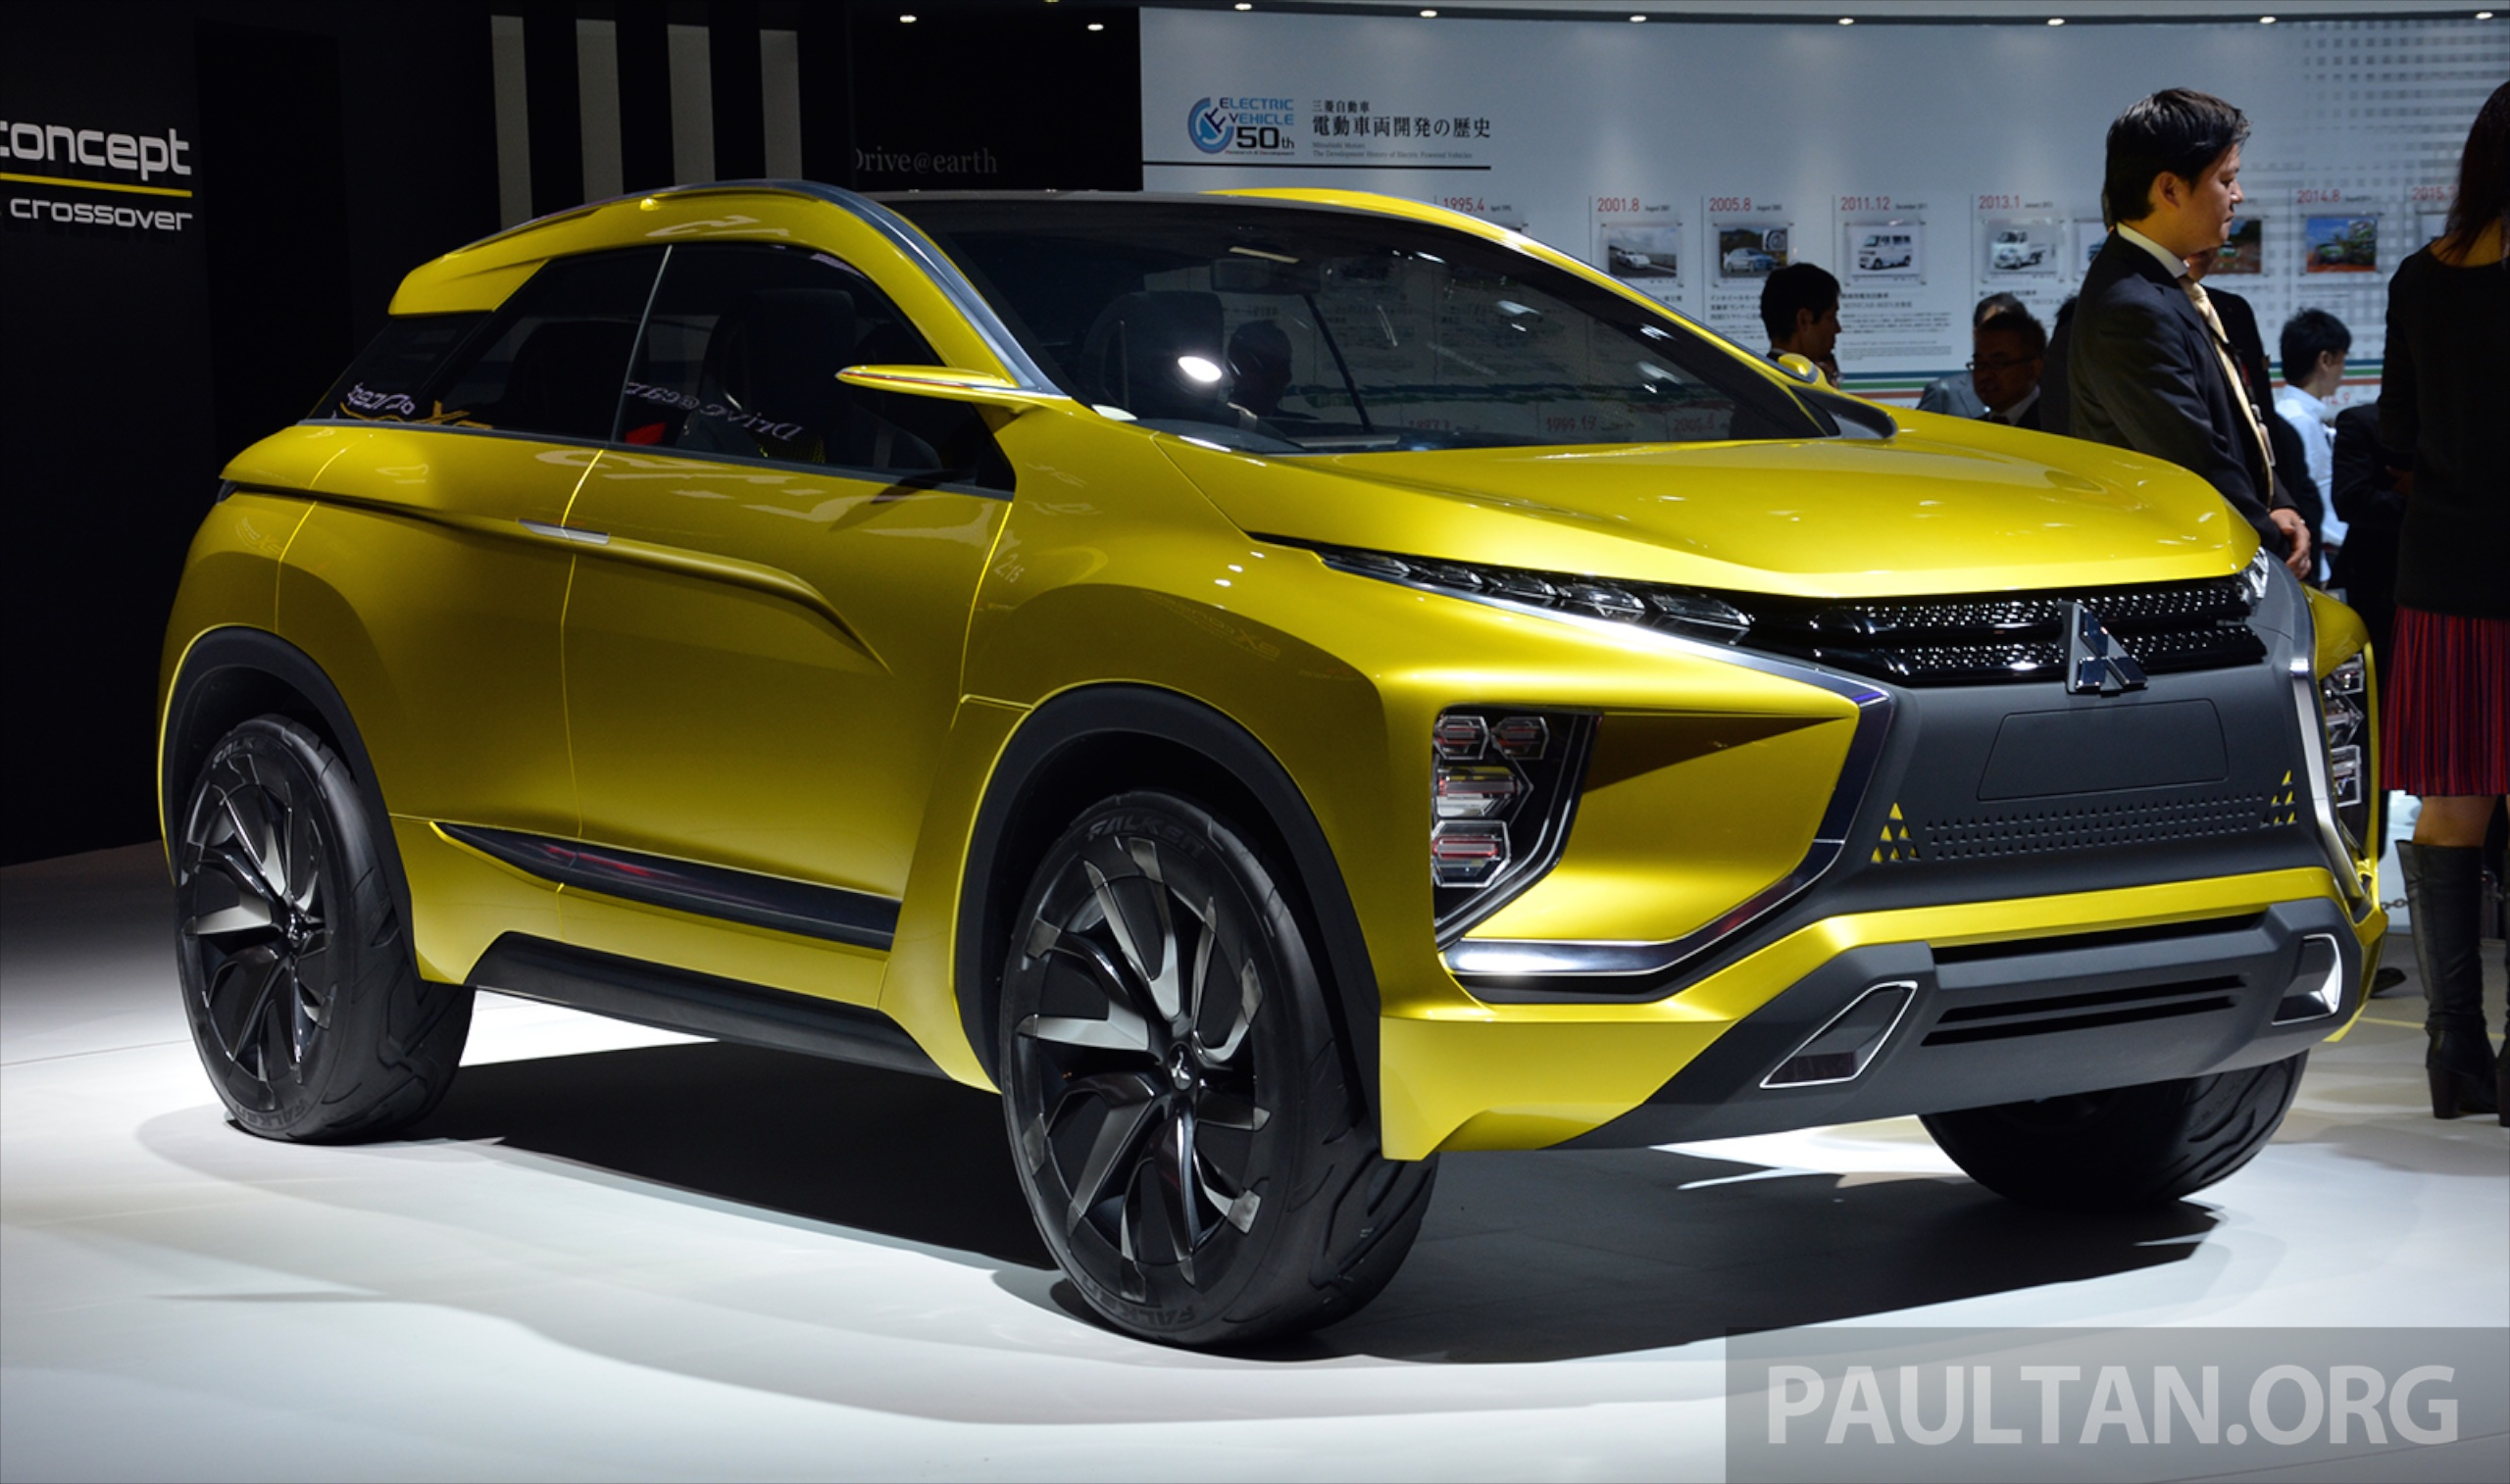 Tokyo 2015: Mitsubishi eX Concept makes world debut; all-electric SUV with 400 km cruising range ...